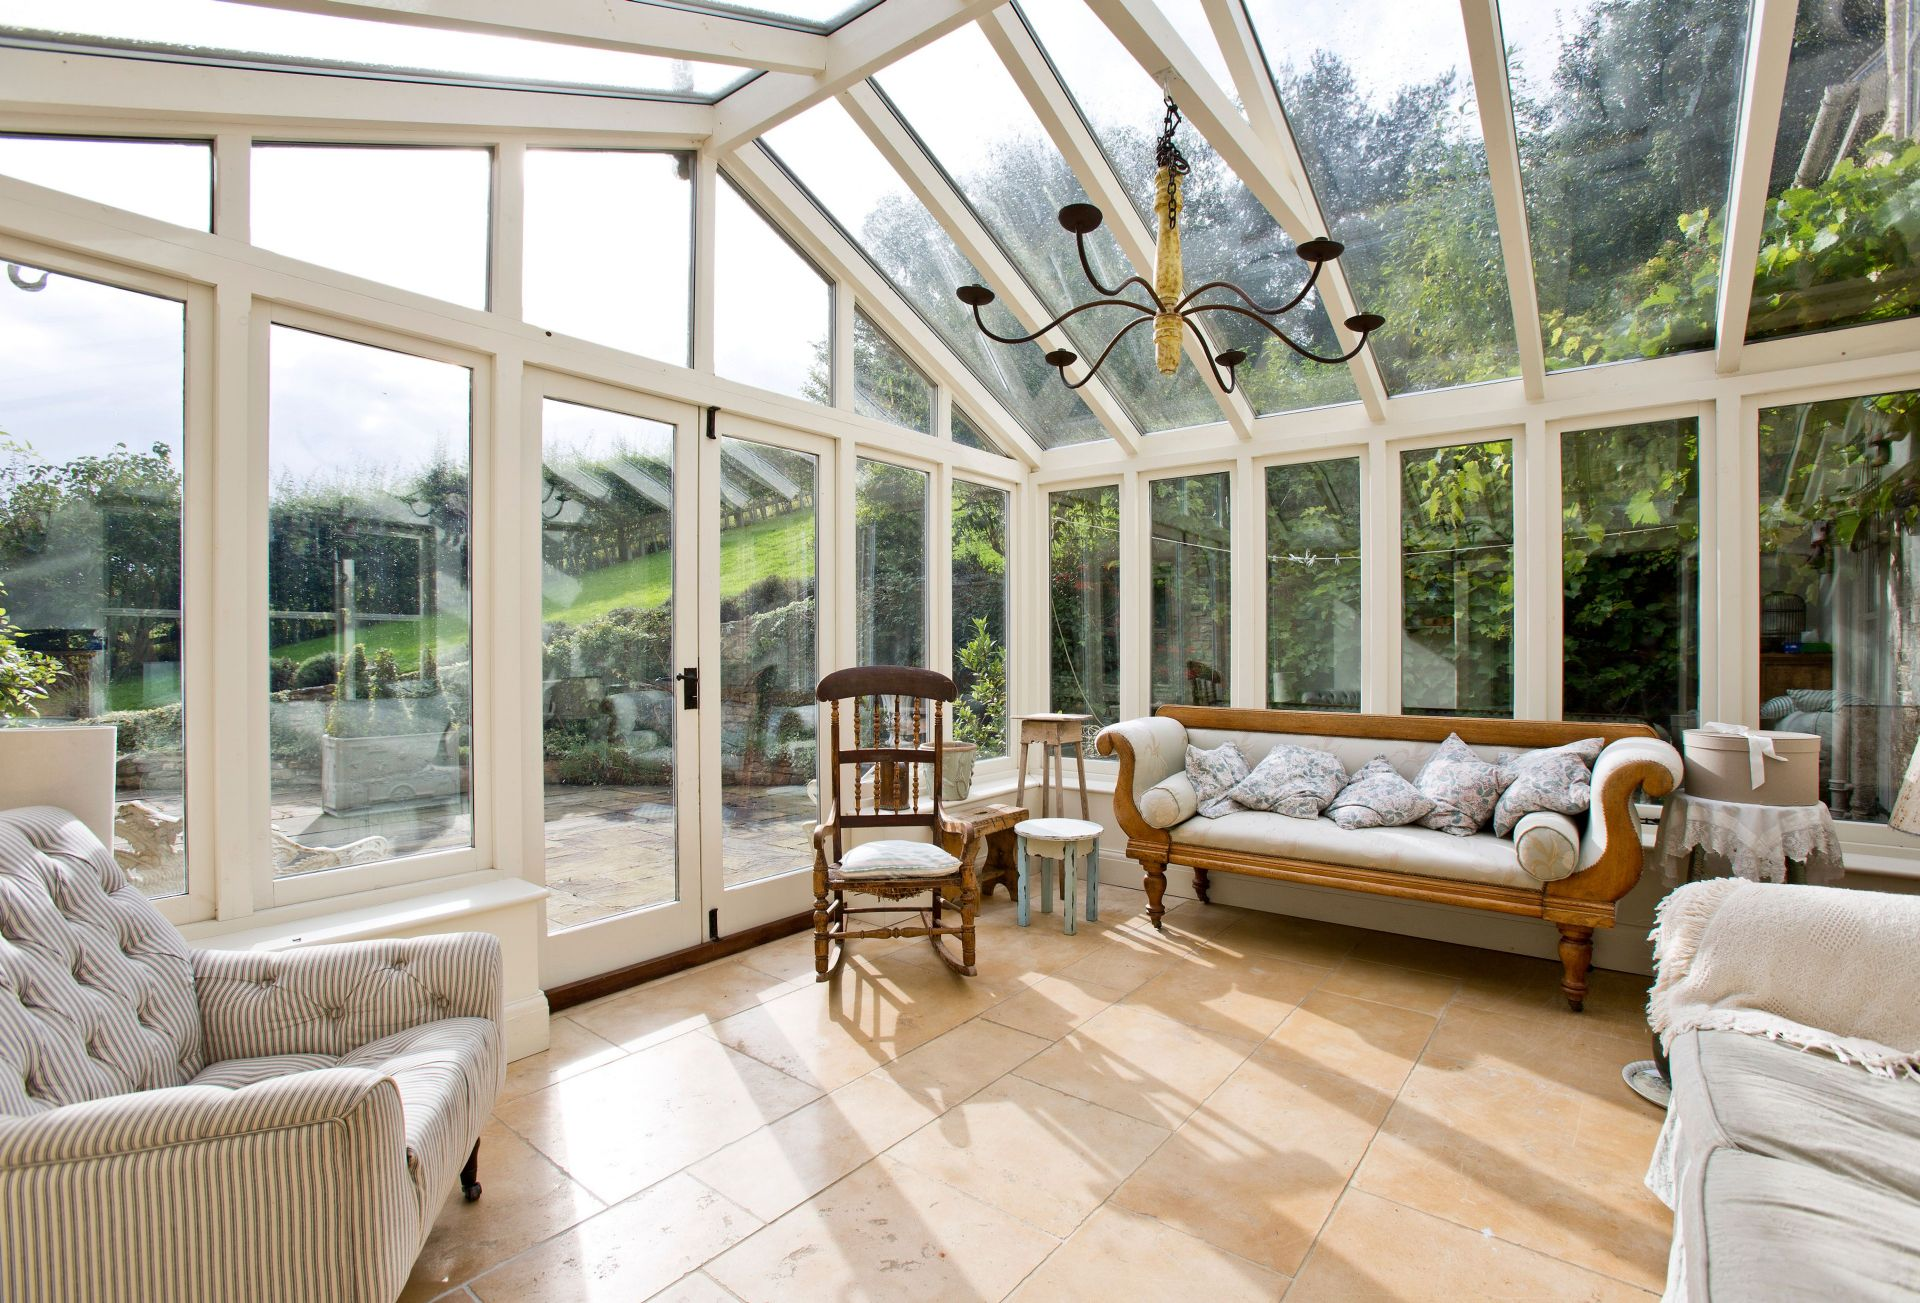 Ground floor: The conservatory